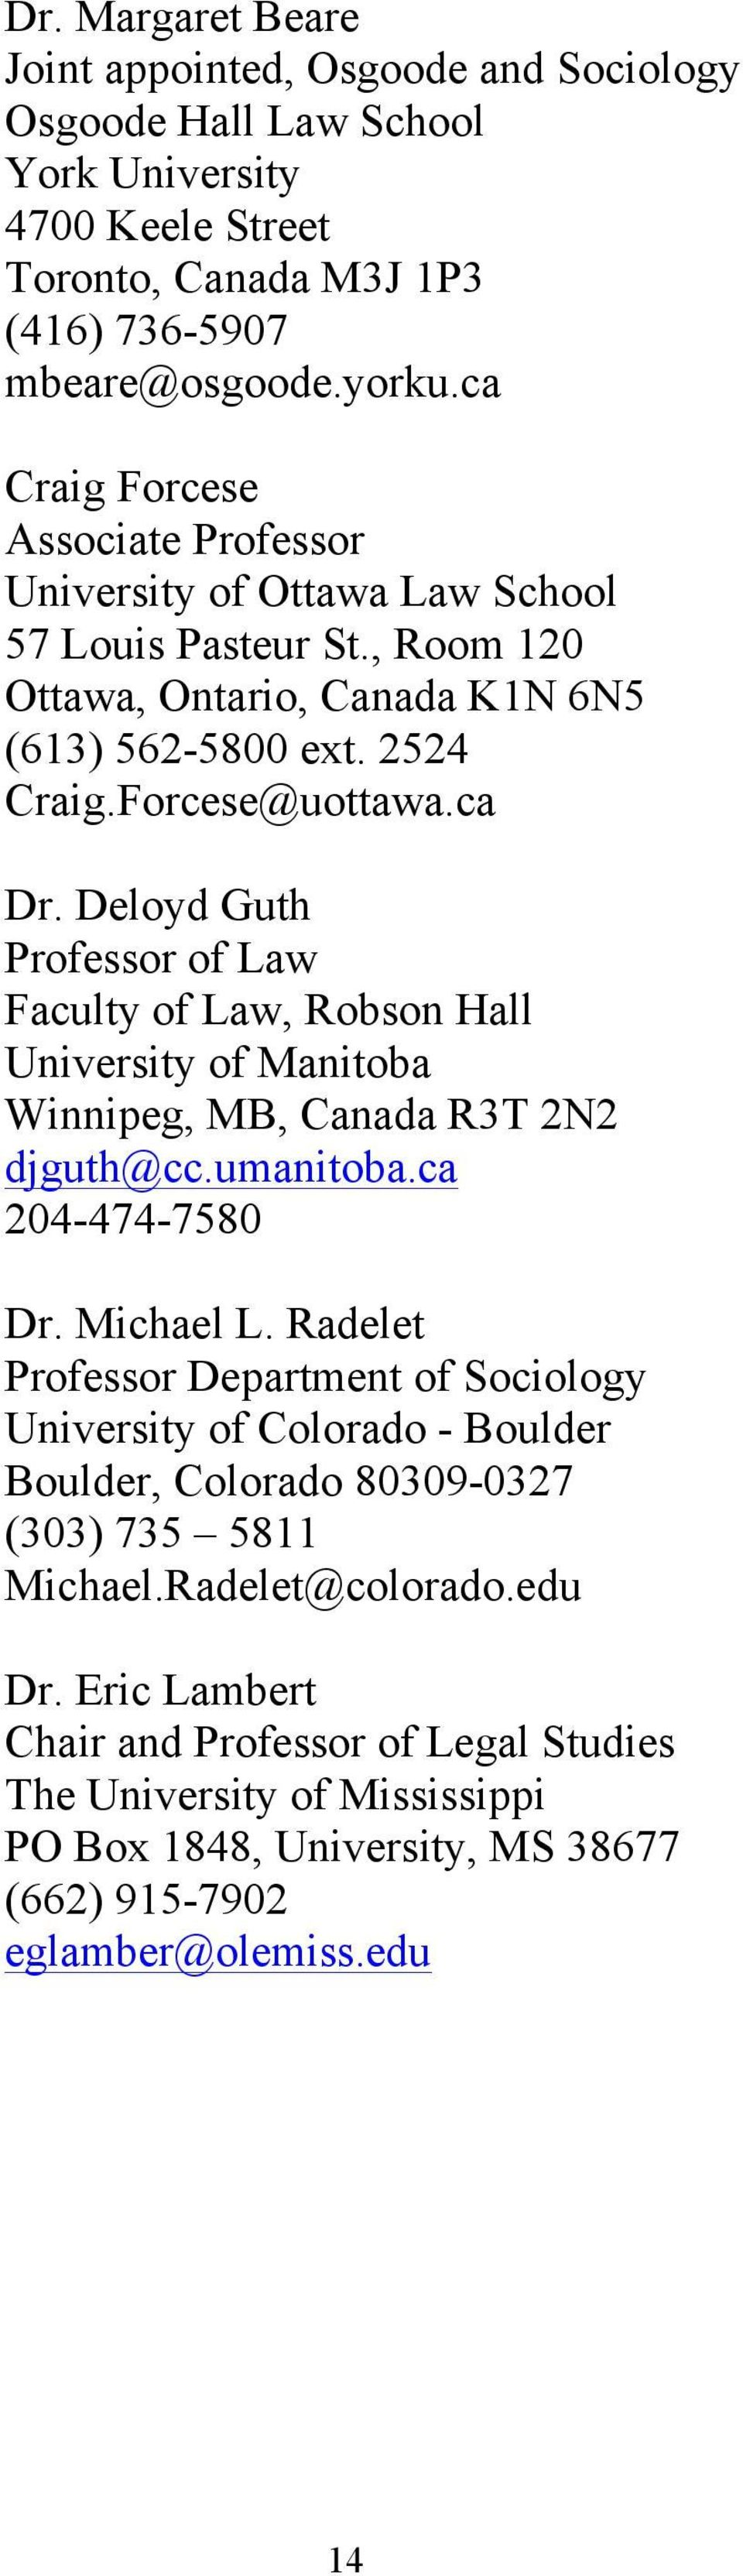 Deloyd Guth Professor of Law Faculty of Law, Robson Hall University of Manitoba Winnipeg, MB, Canada R3T 2N2 djguth@cc.umanitoba.ca 204-474-7580 Dr. Michael L.